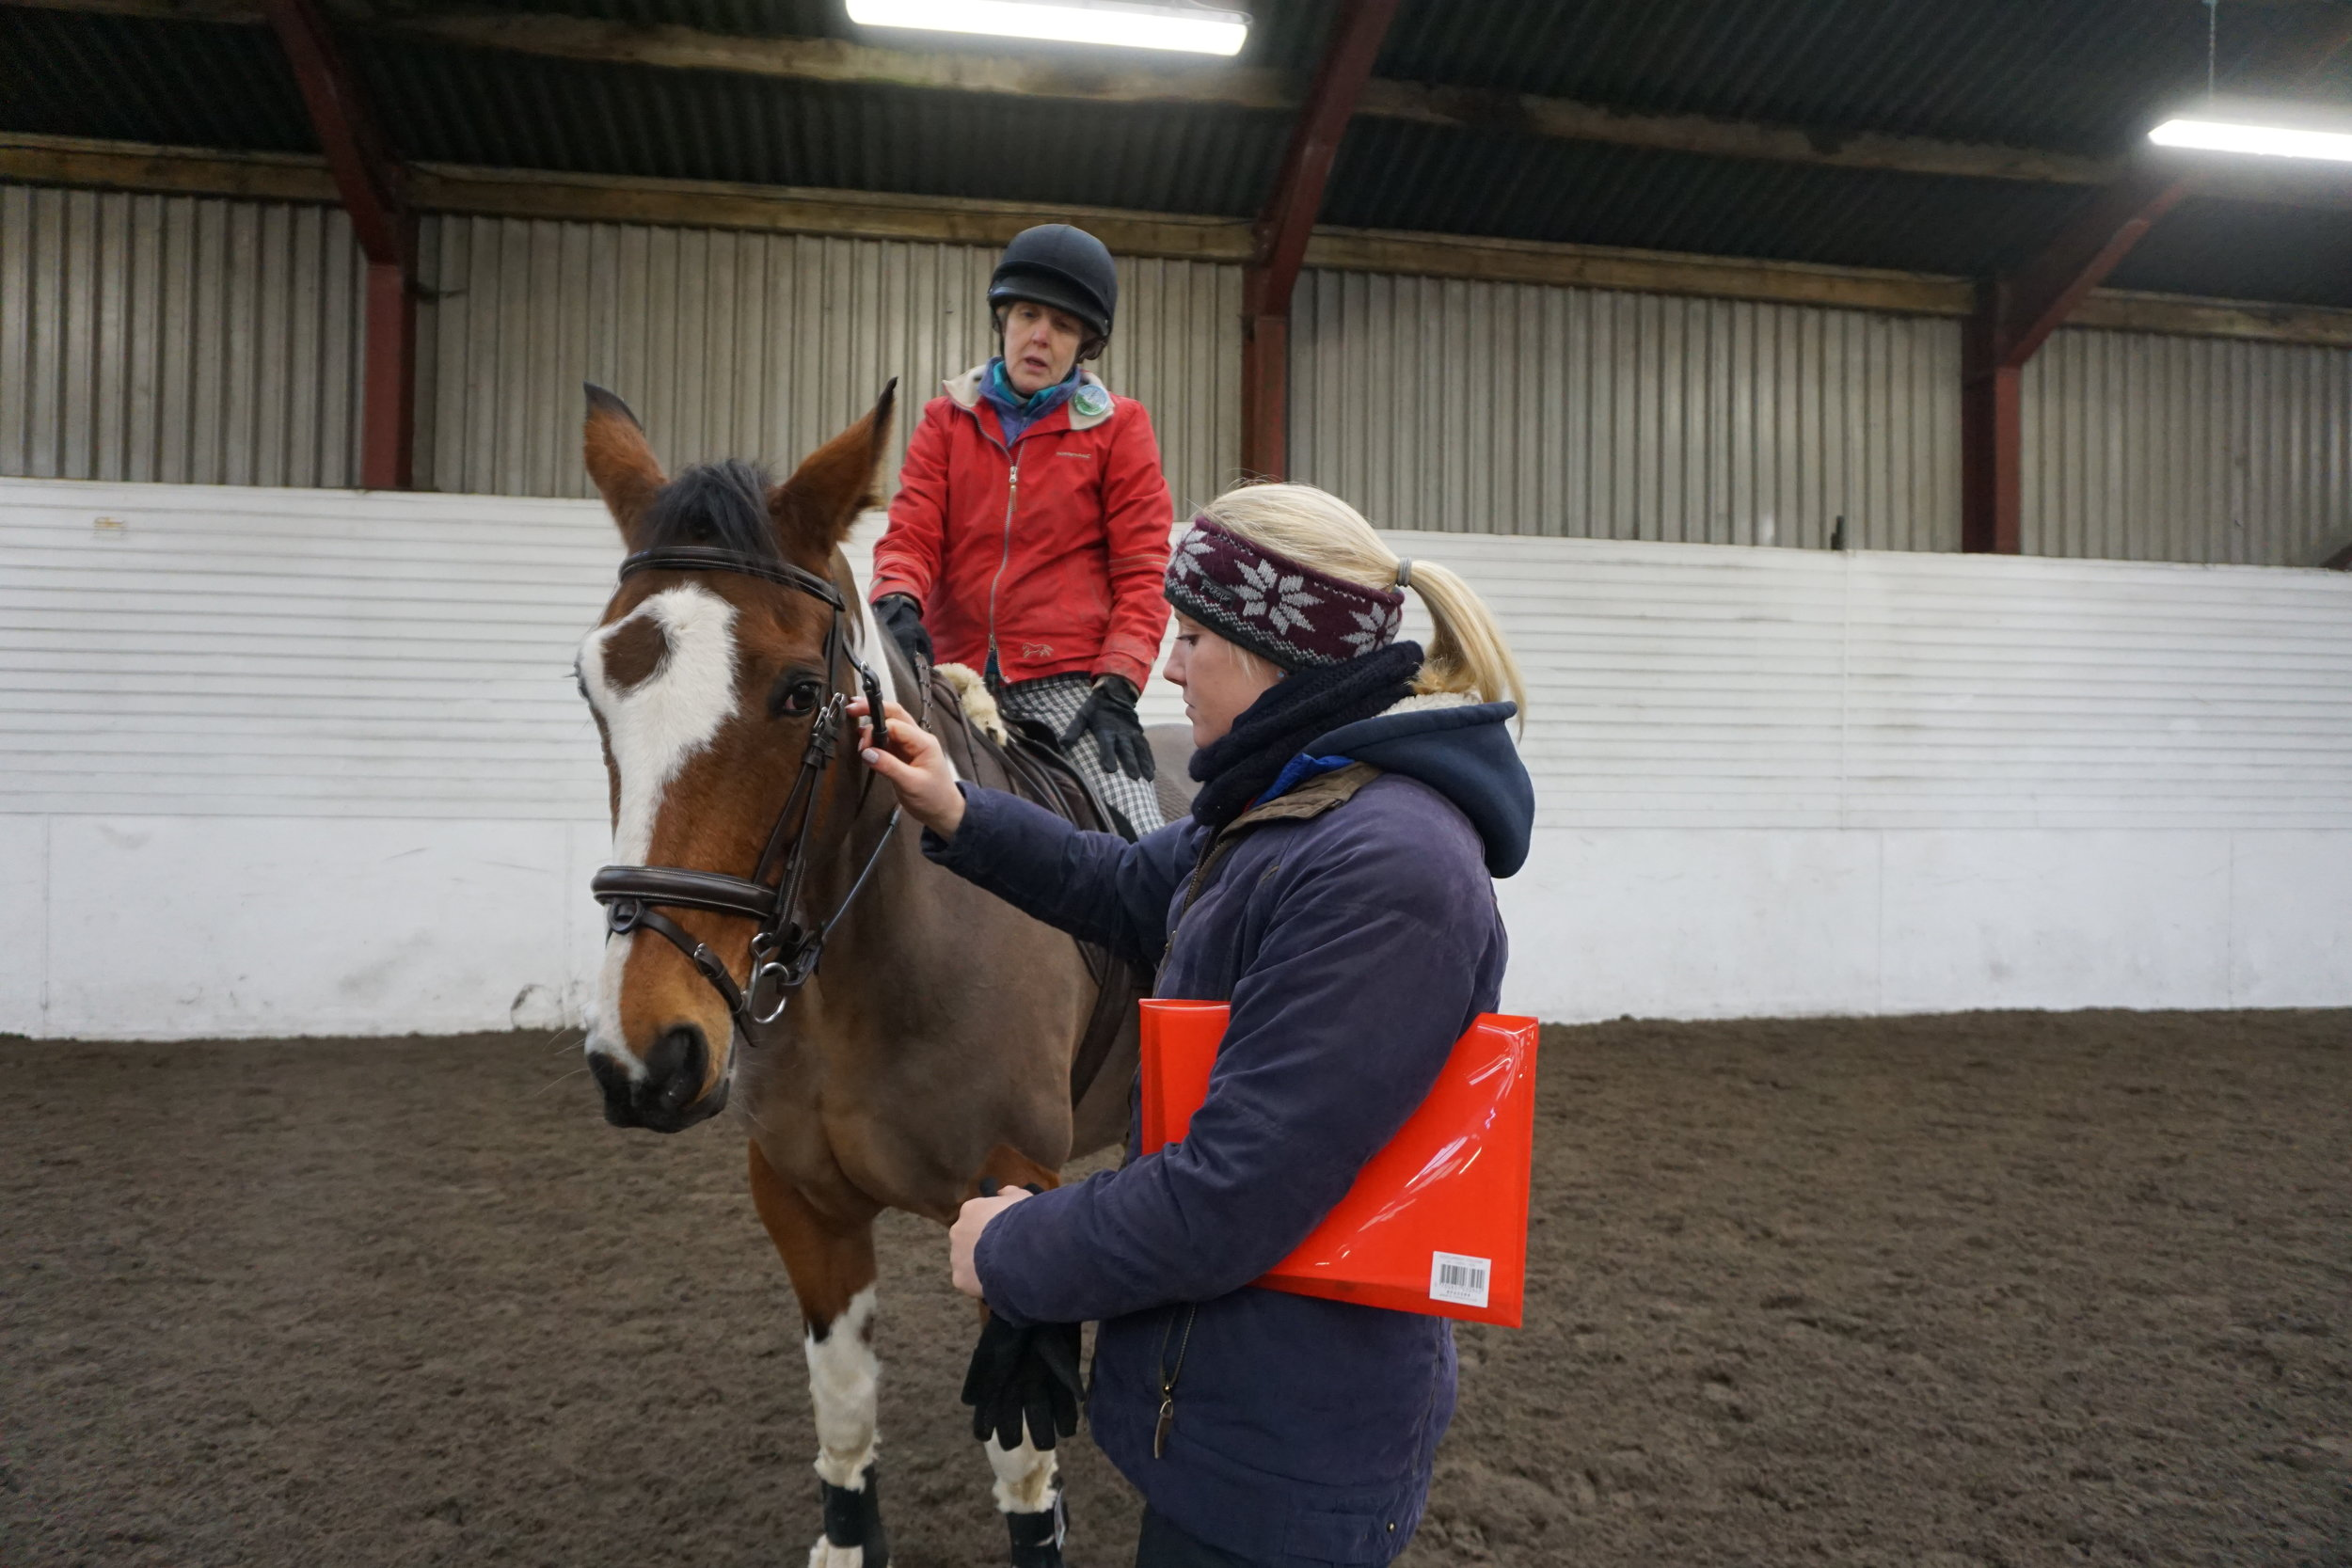 Getting a qualified professional to check your tack will help keep you and your horse safe.